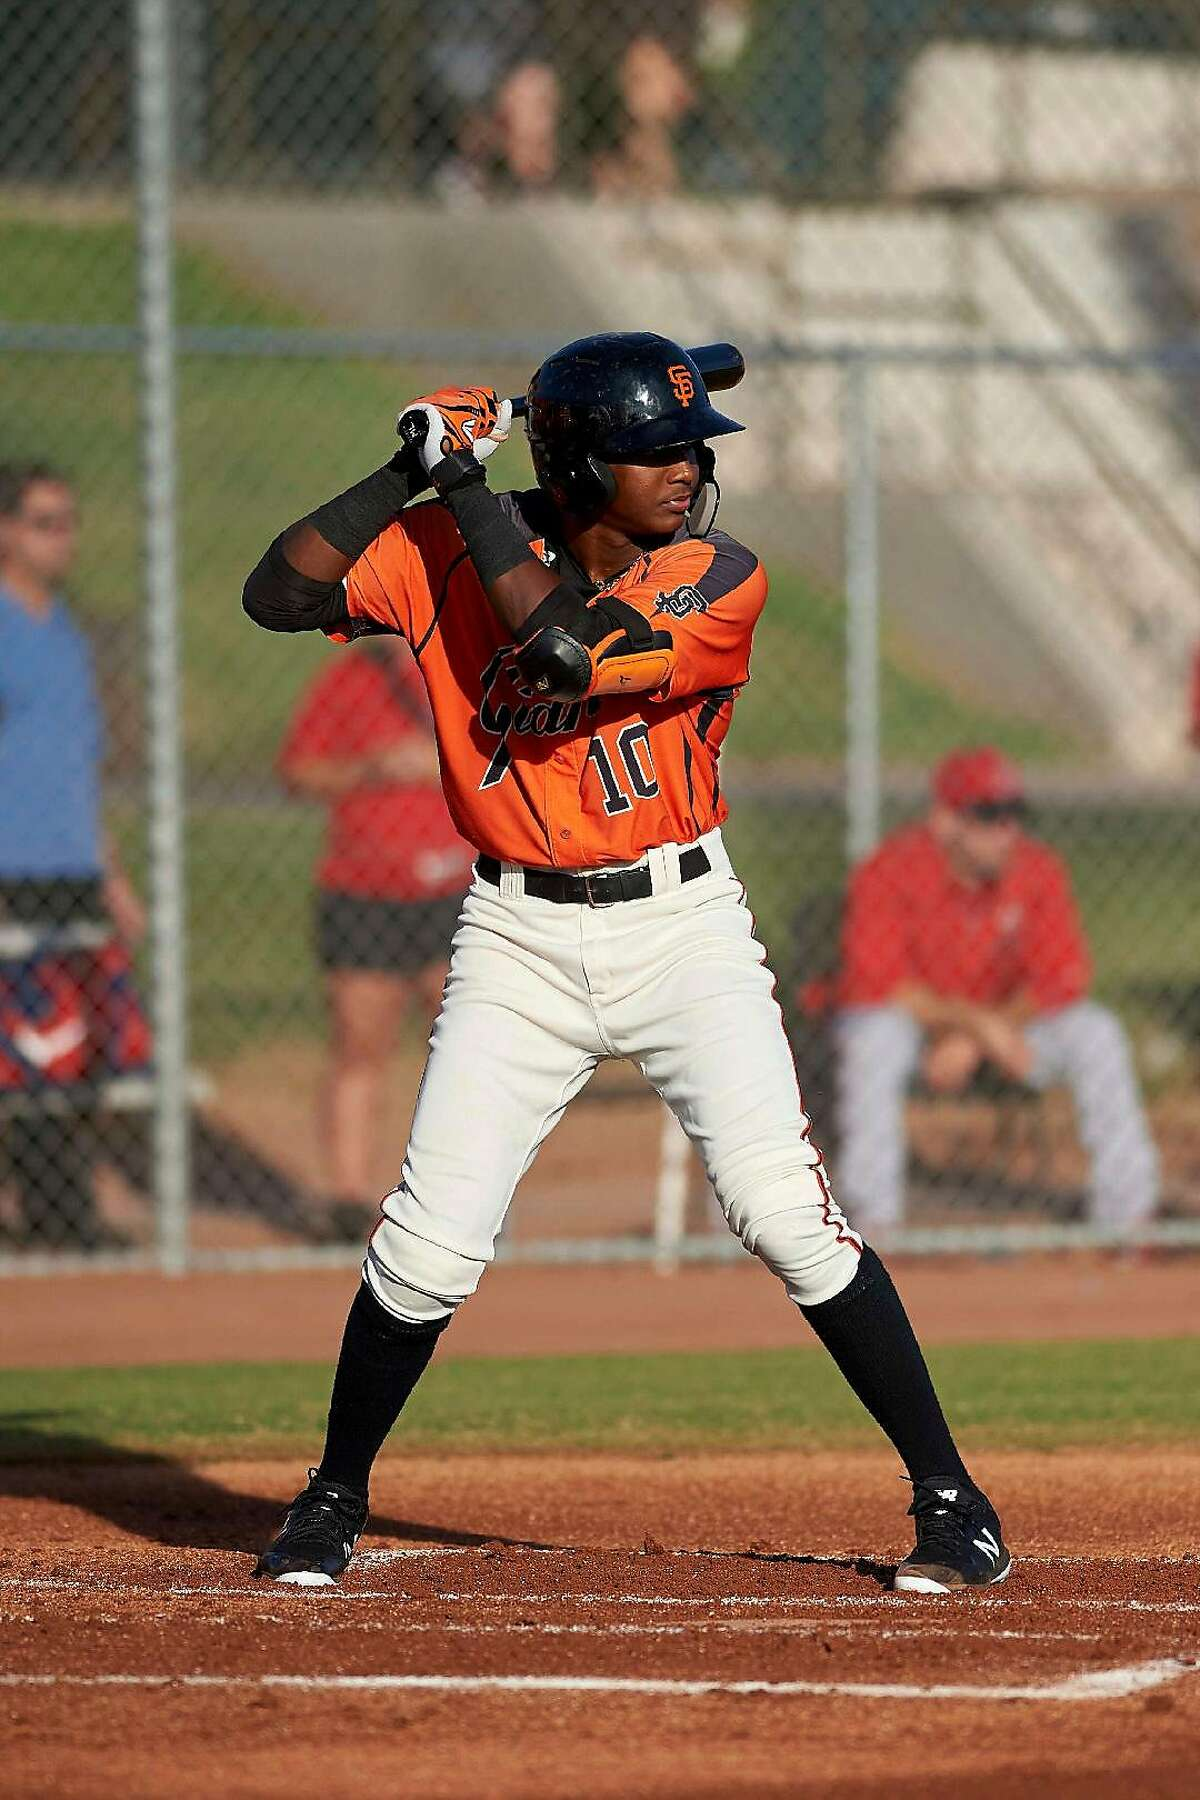 San Francisco Giants prospect Marco Luciano appeared in 38 games in rookie ball in 2019 and collected 10 homers and 38 RBIs and led the league by scoring 46 runs.